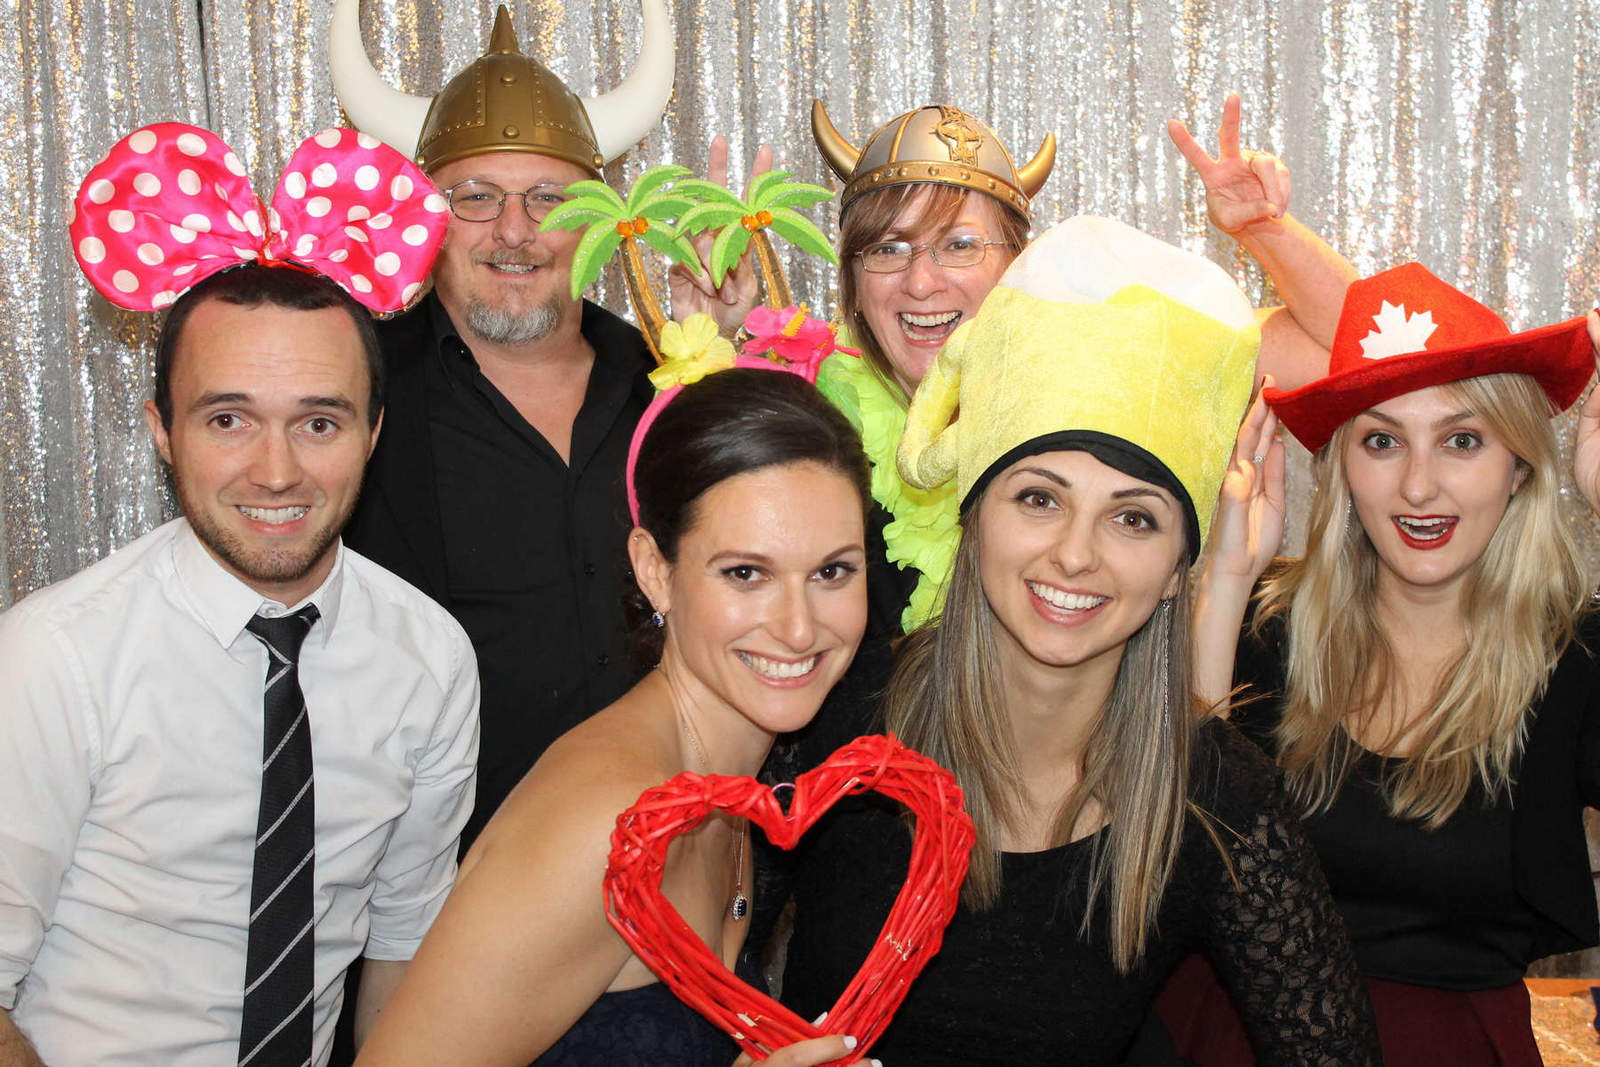 Wedding-Photo-Booth-397781